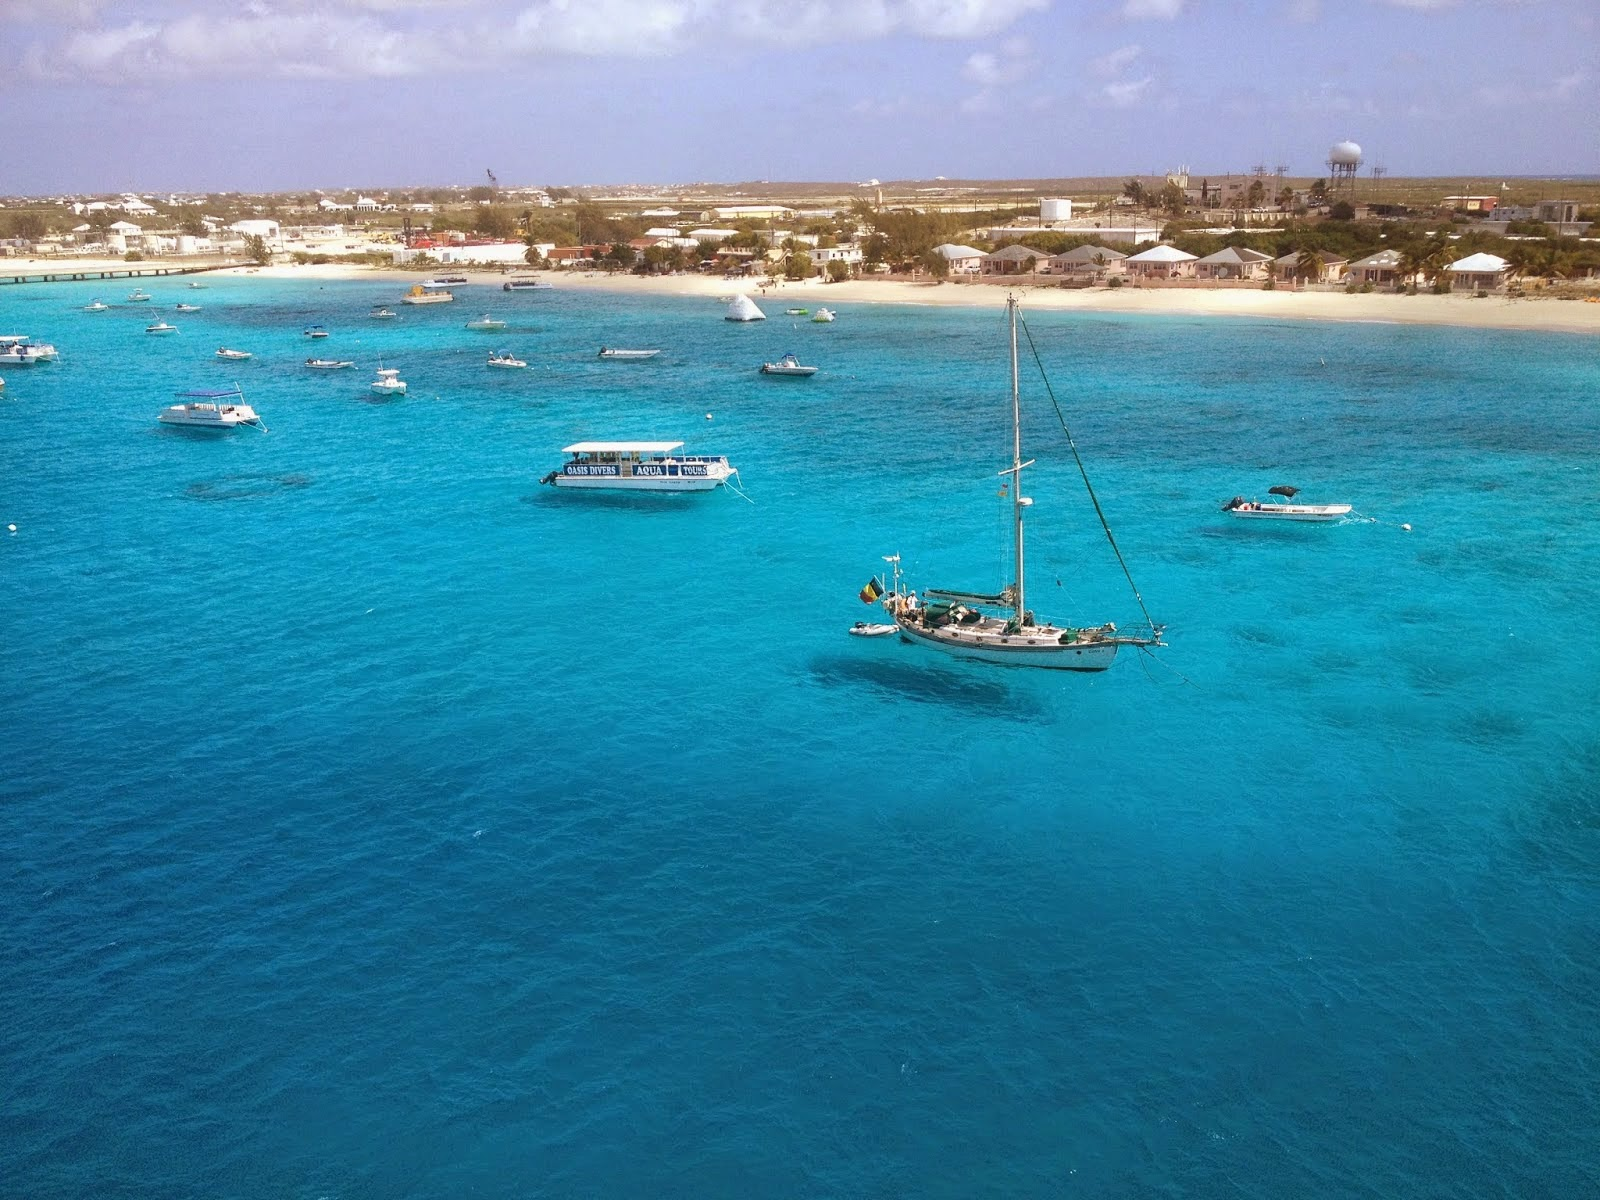 Sailboats in Grand Turk